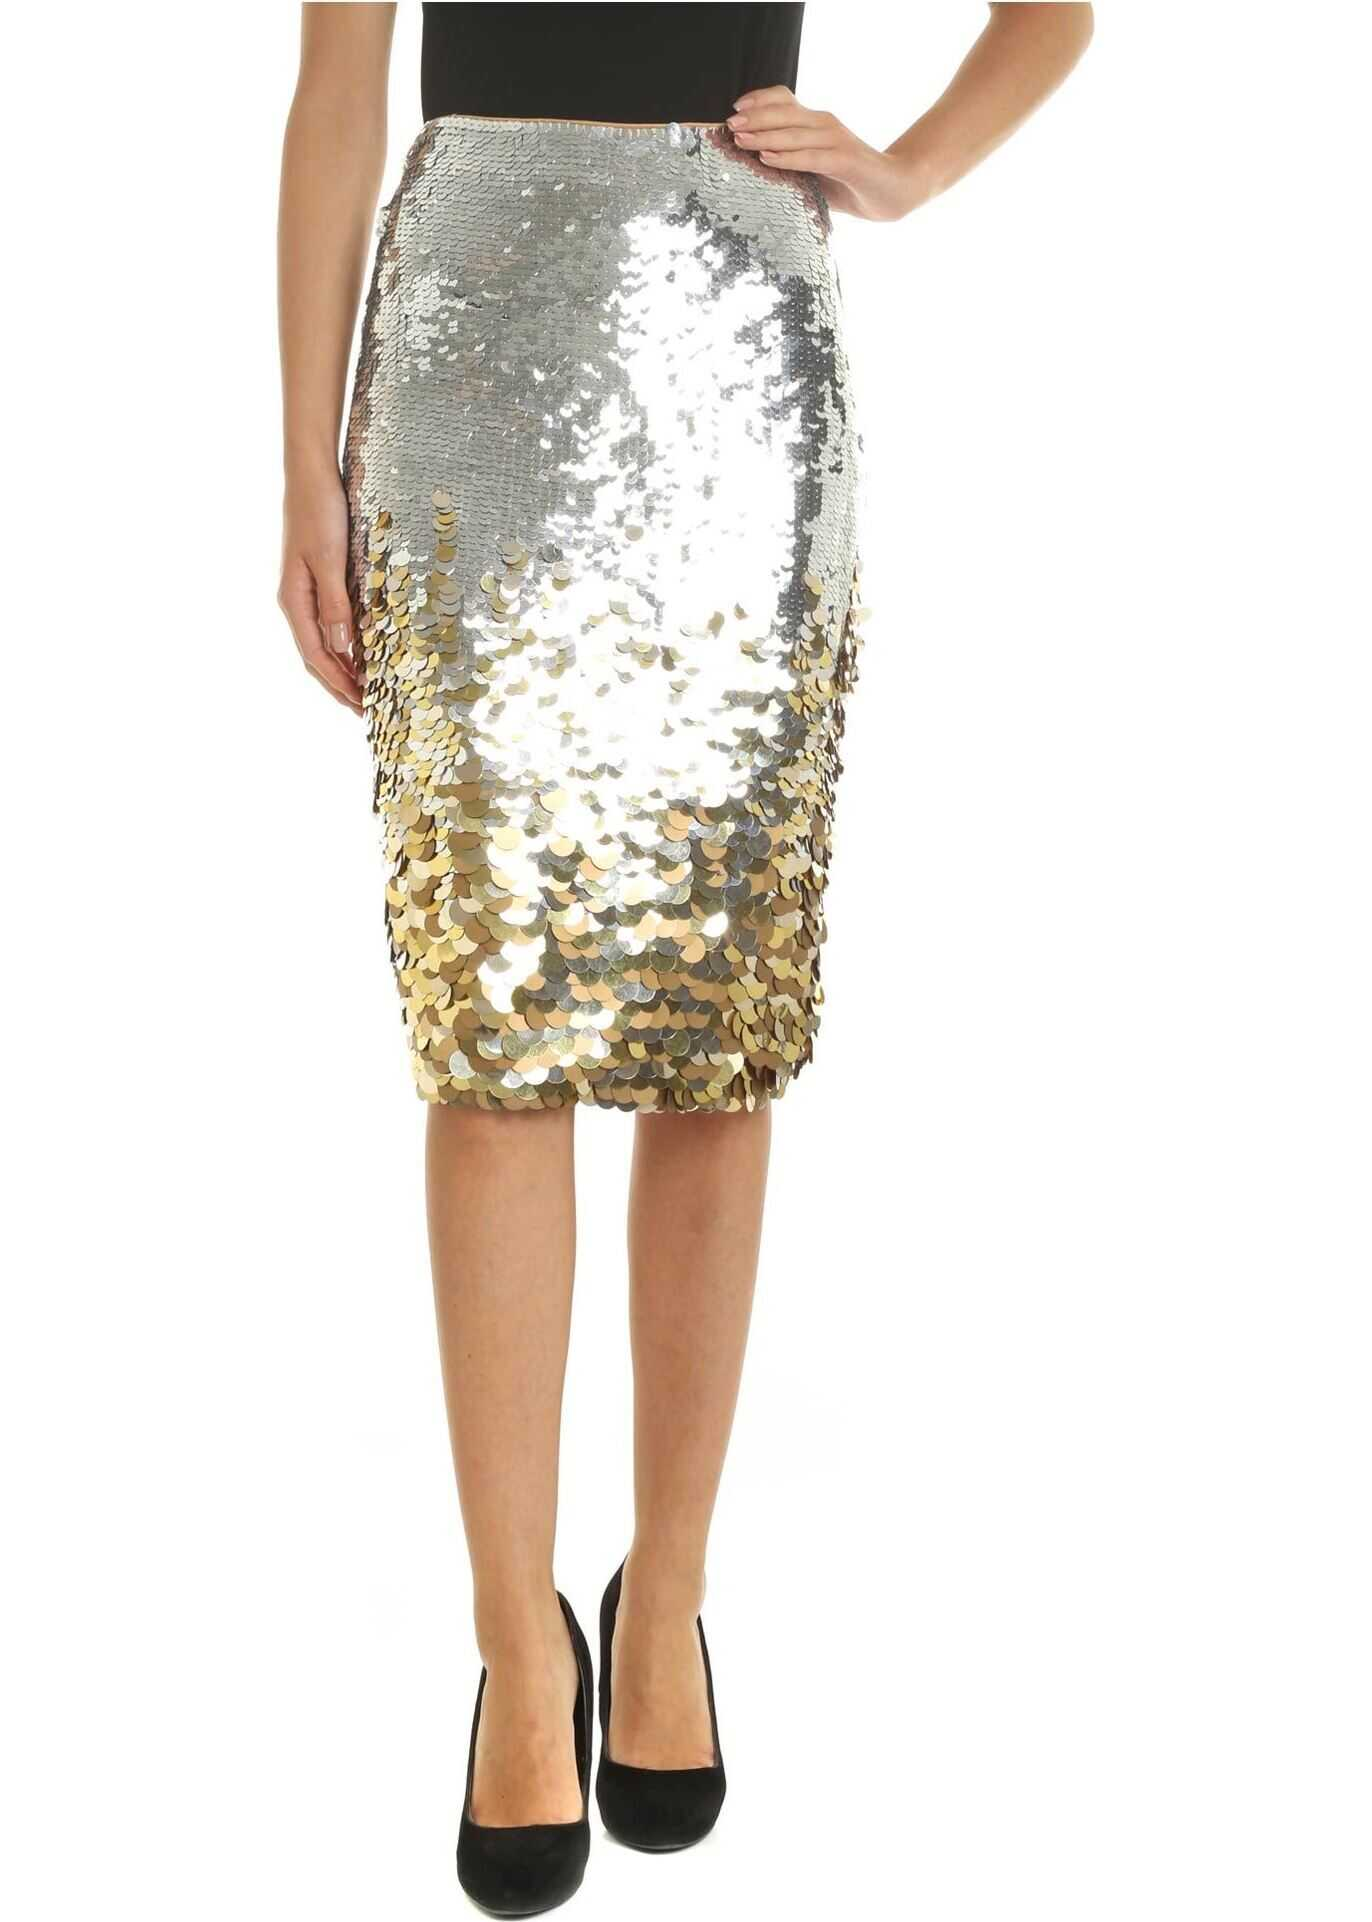 Pinko Orion Skirt In Silver And Golden Sequins Gold